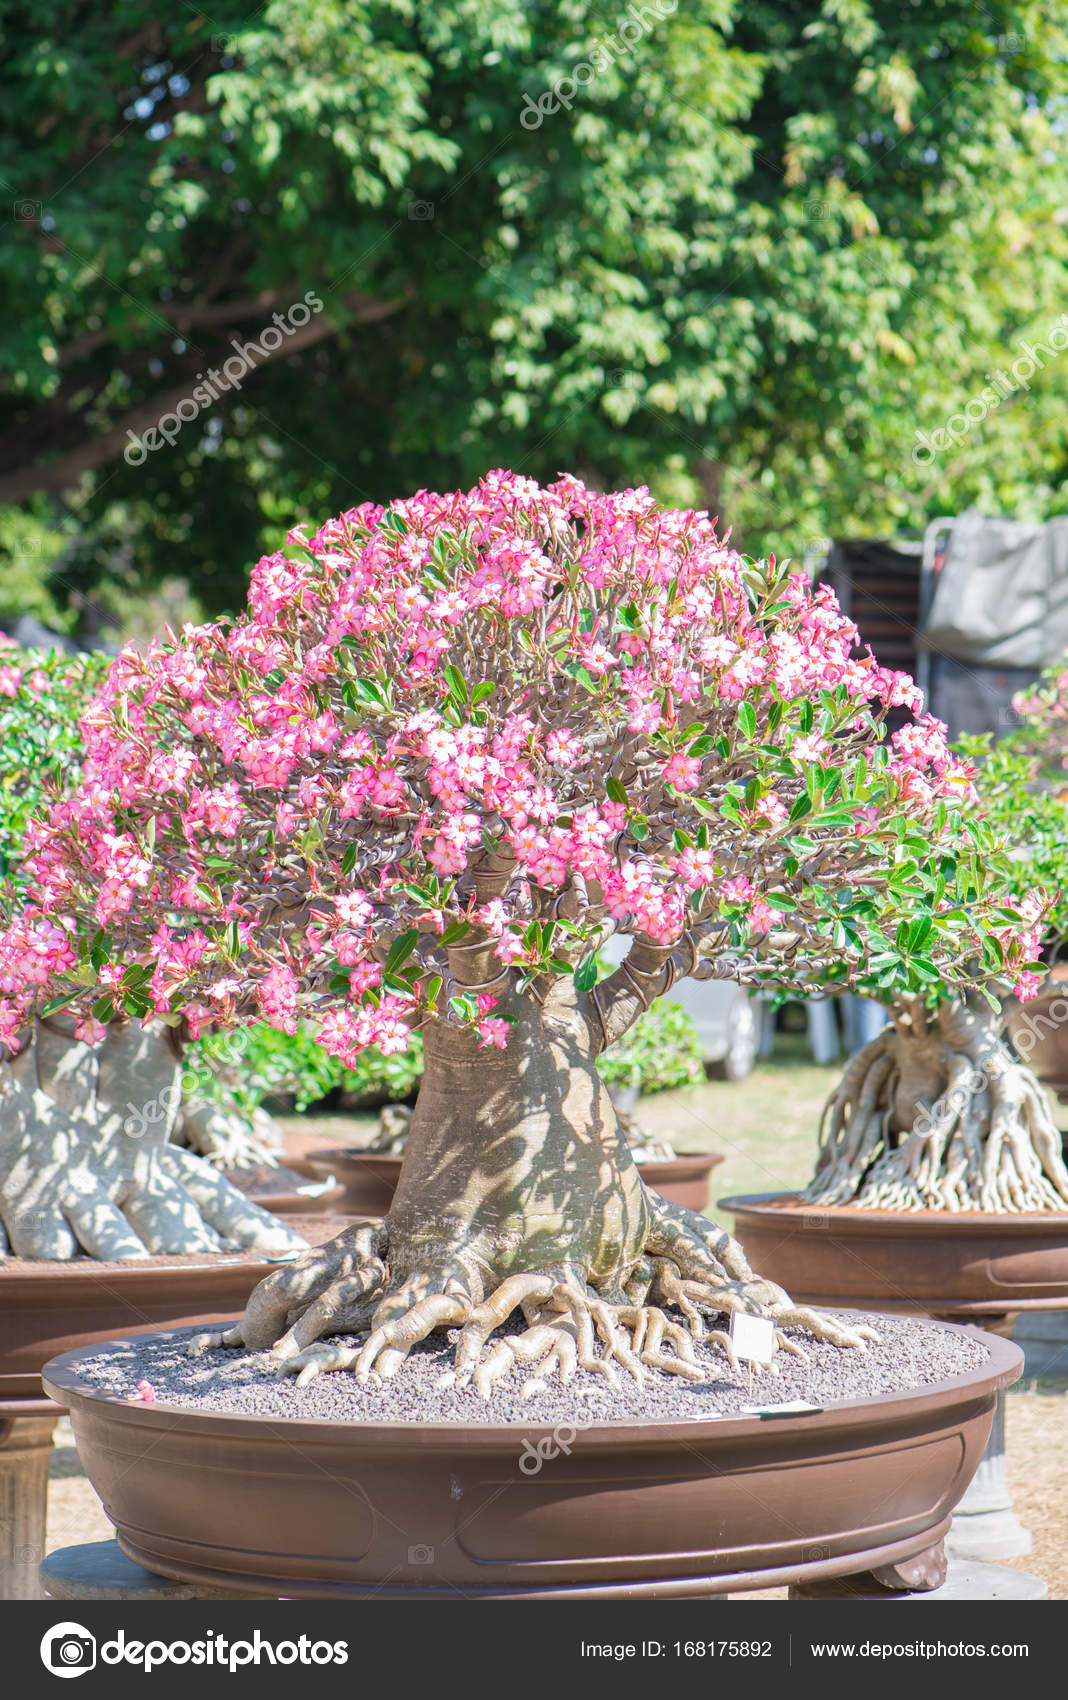 Adenium Tree Or Desert Rose In Flower Pot In Bonsai Style Stock Photo C Khuntapoldep 168175892